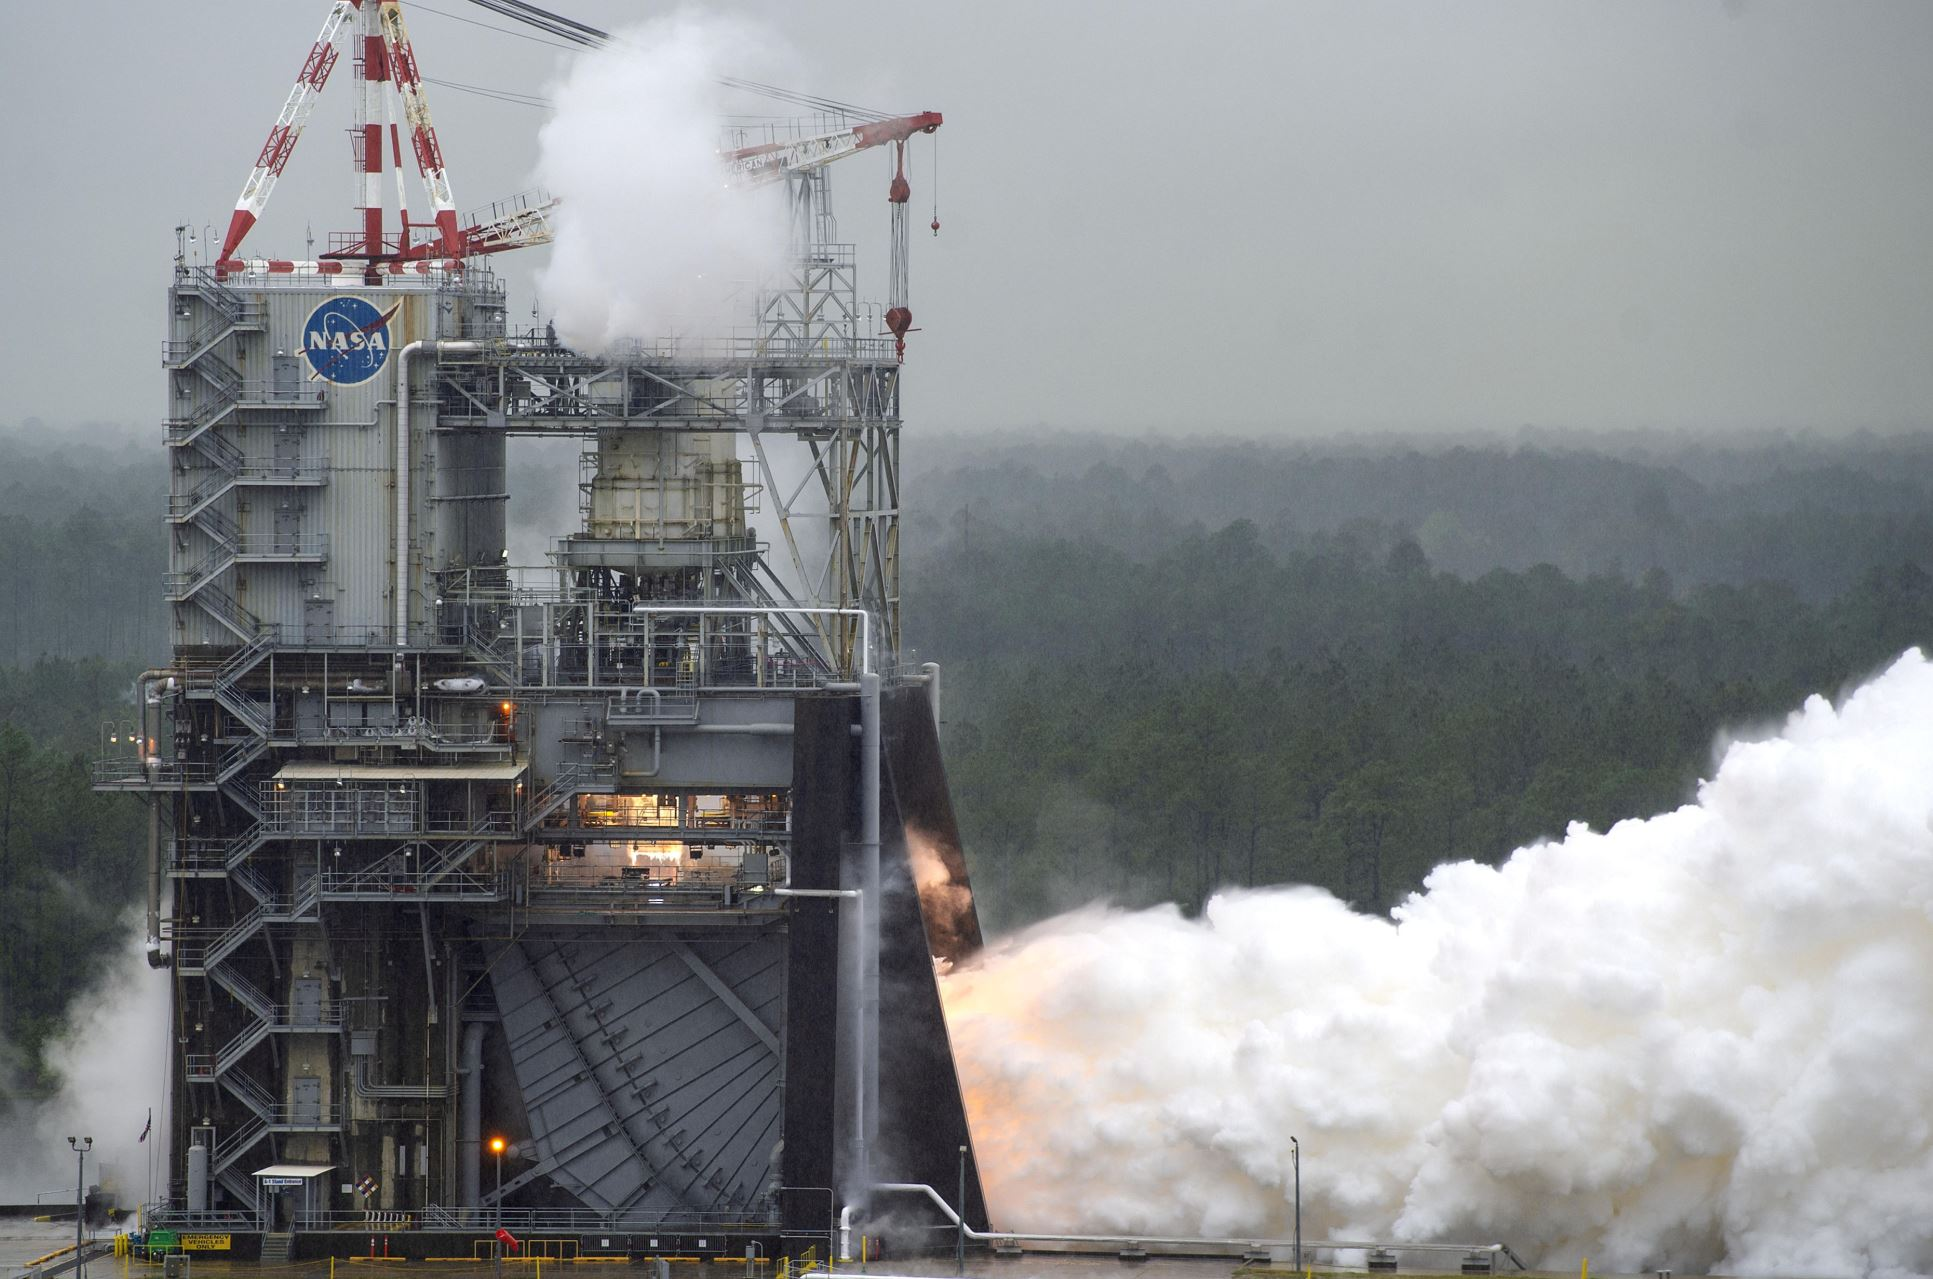 NASA conducts a test of RS-25 flight engine No. 2062 on April 4 on the A-1 Test Stand at Stennis Space Center near Bay St. Louis, Miss. The test marked a major milestone in NASA's march forward to Moon missions. All 16 RS-25 engines that will help power the first four flights of NASA's new Space Launch System rocket now have been tested. - Image Credits: NASA/SSC